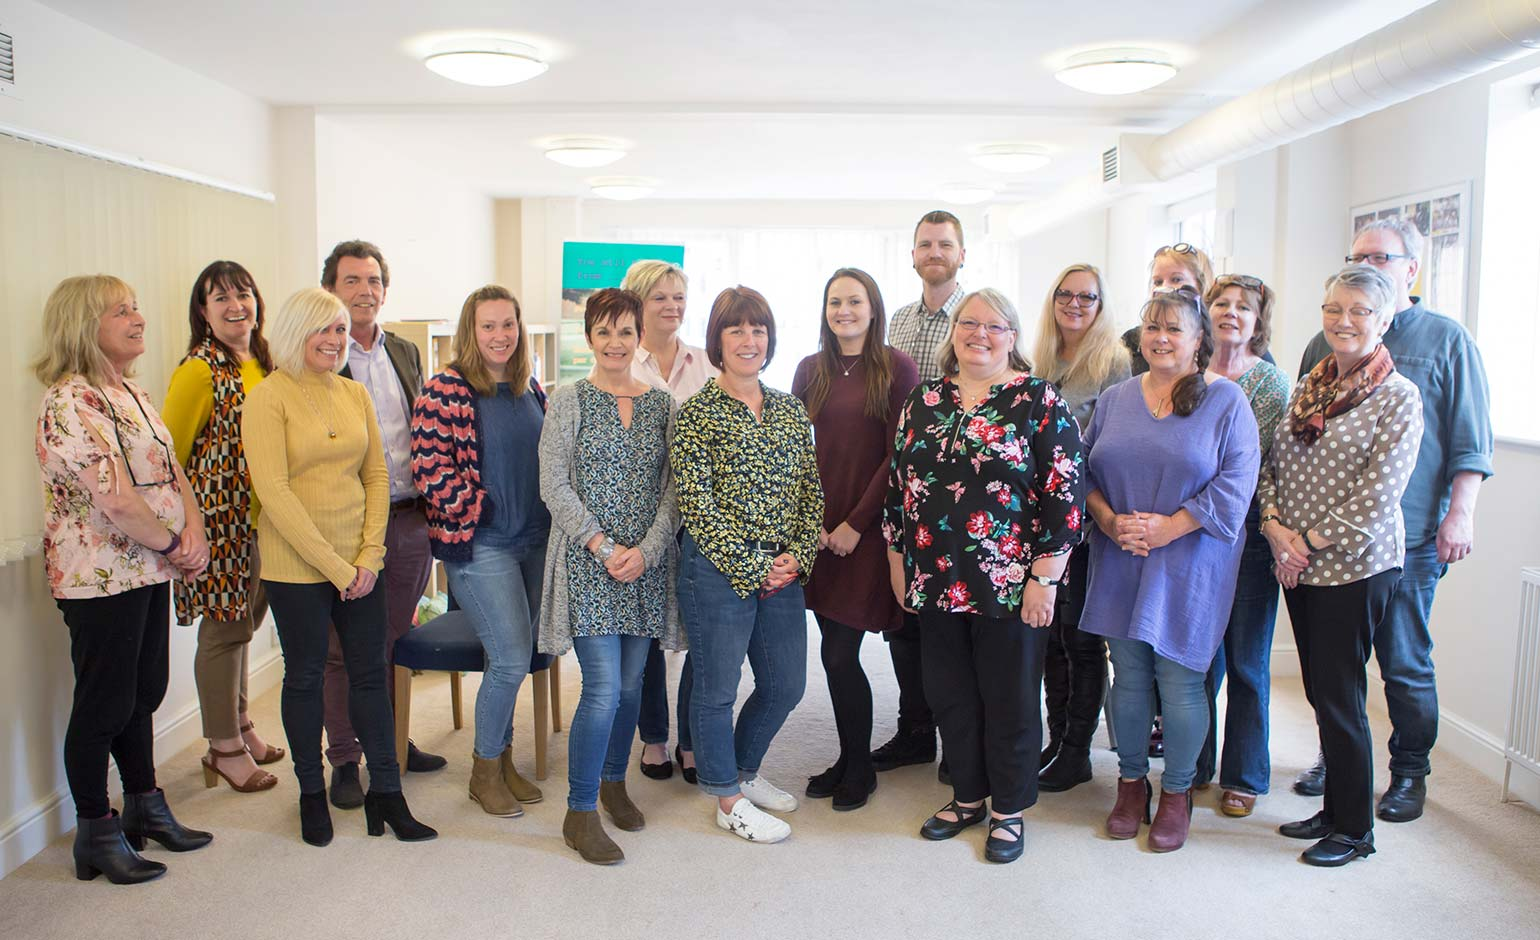 Fostering agency expands services to Bath to provide care for youngsters